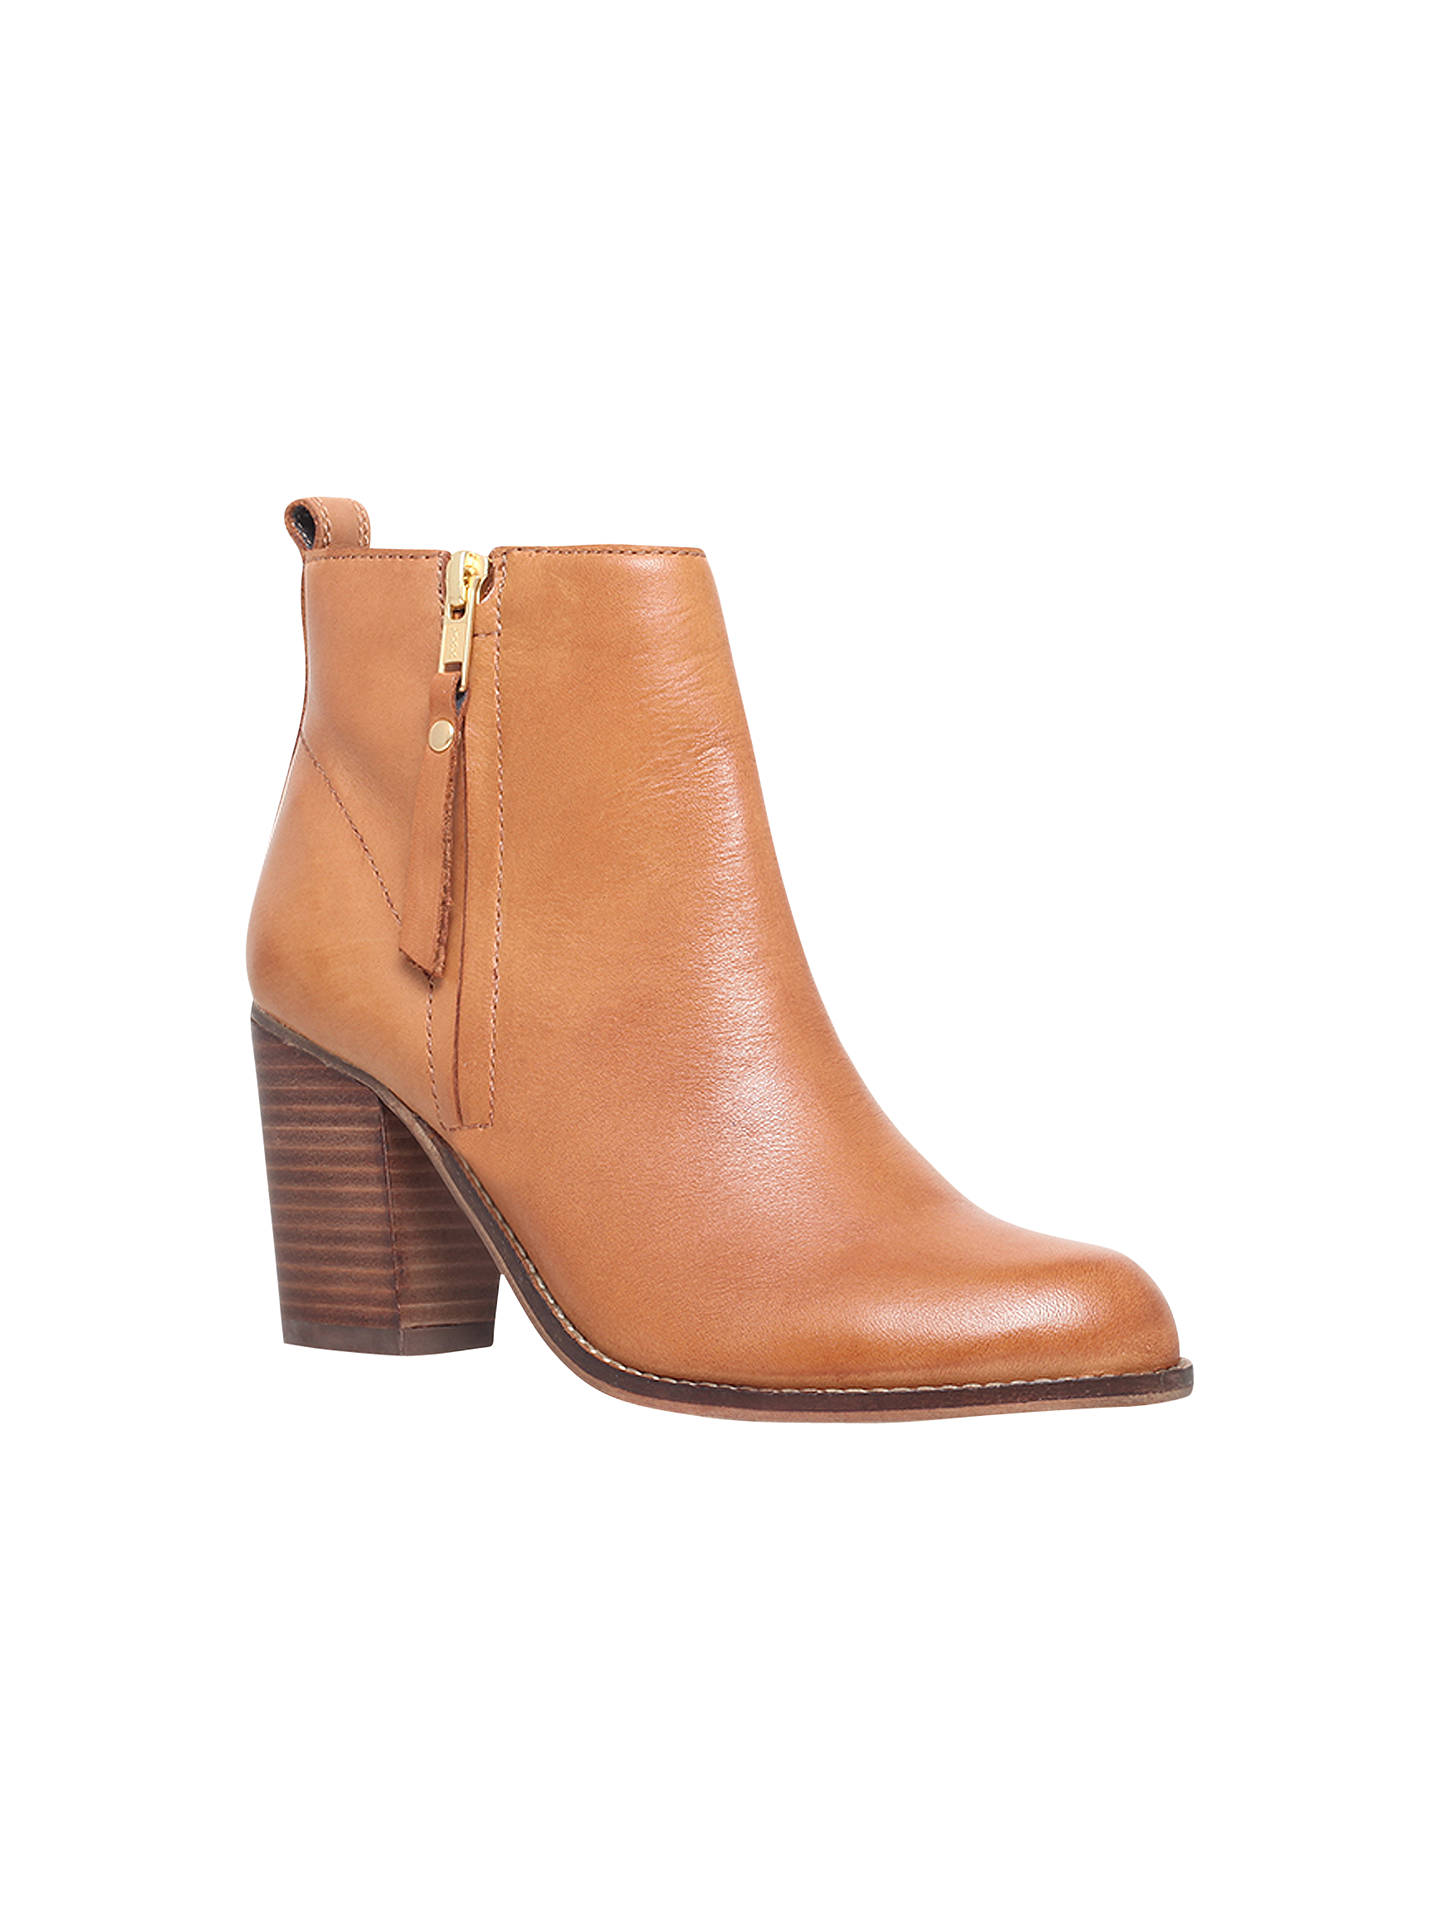 4fe6d04d3b15 Buy Carvela Tanga Block Heeled Ankle Boots, Tan Leather, 4 Online at  johnlewis.